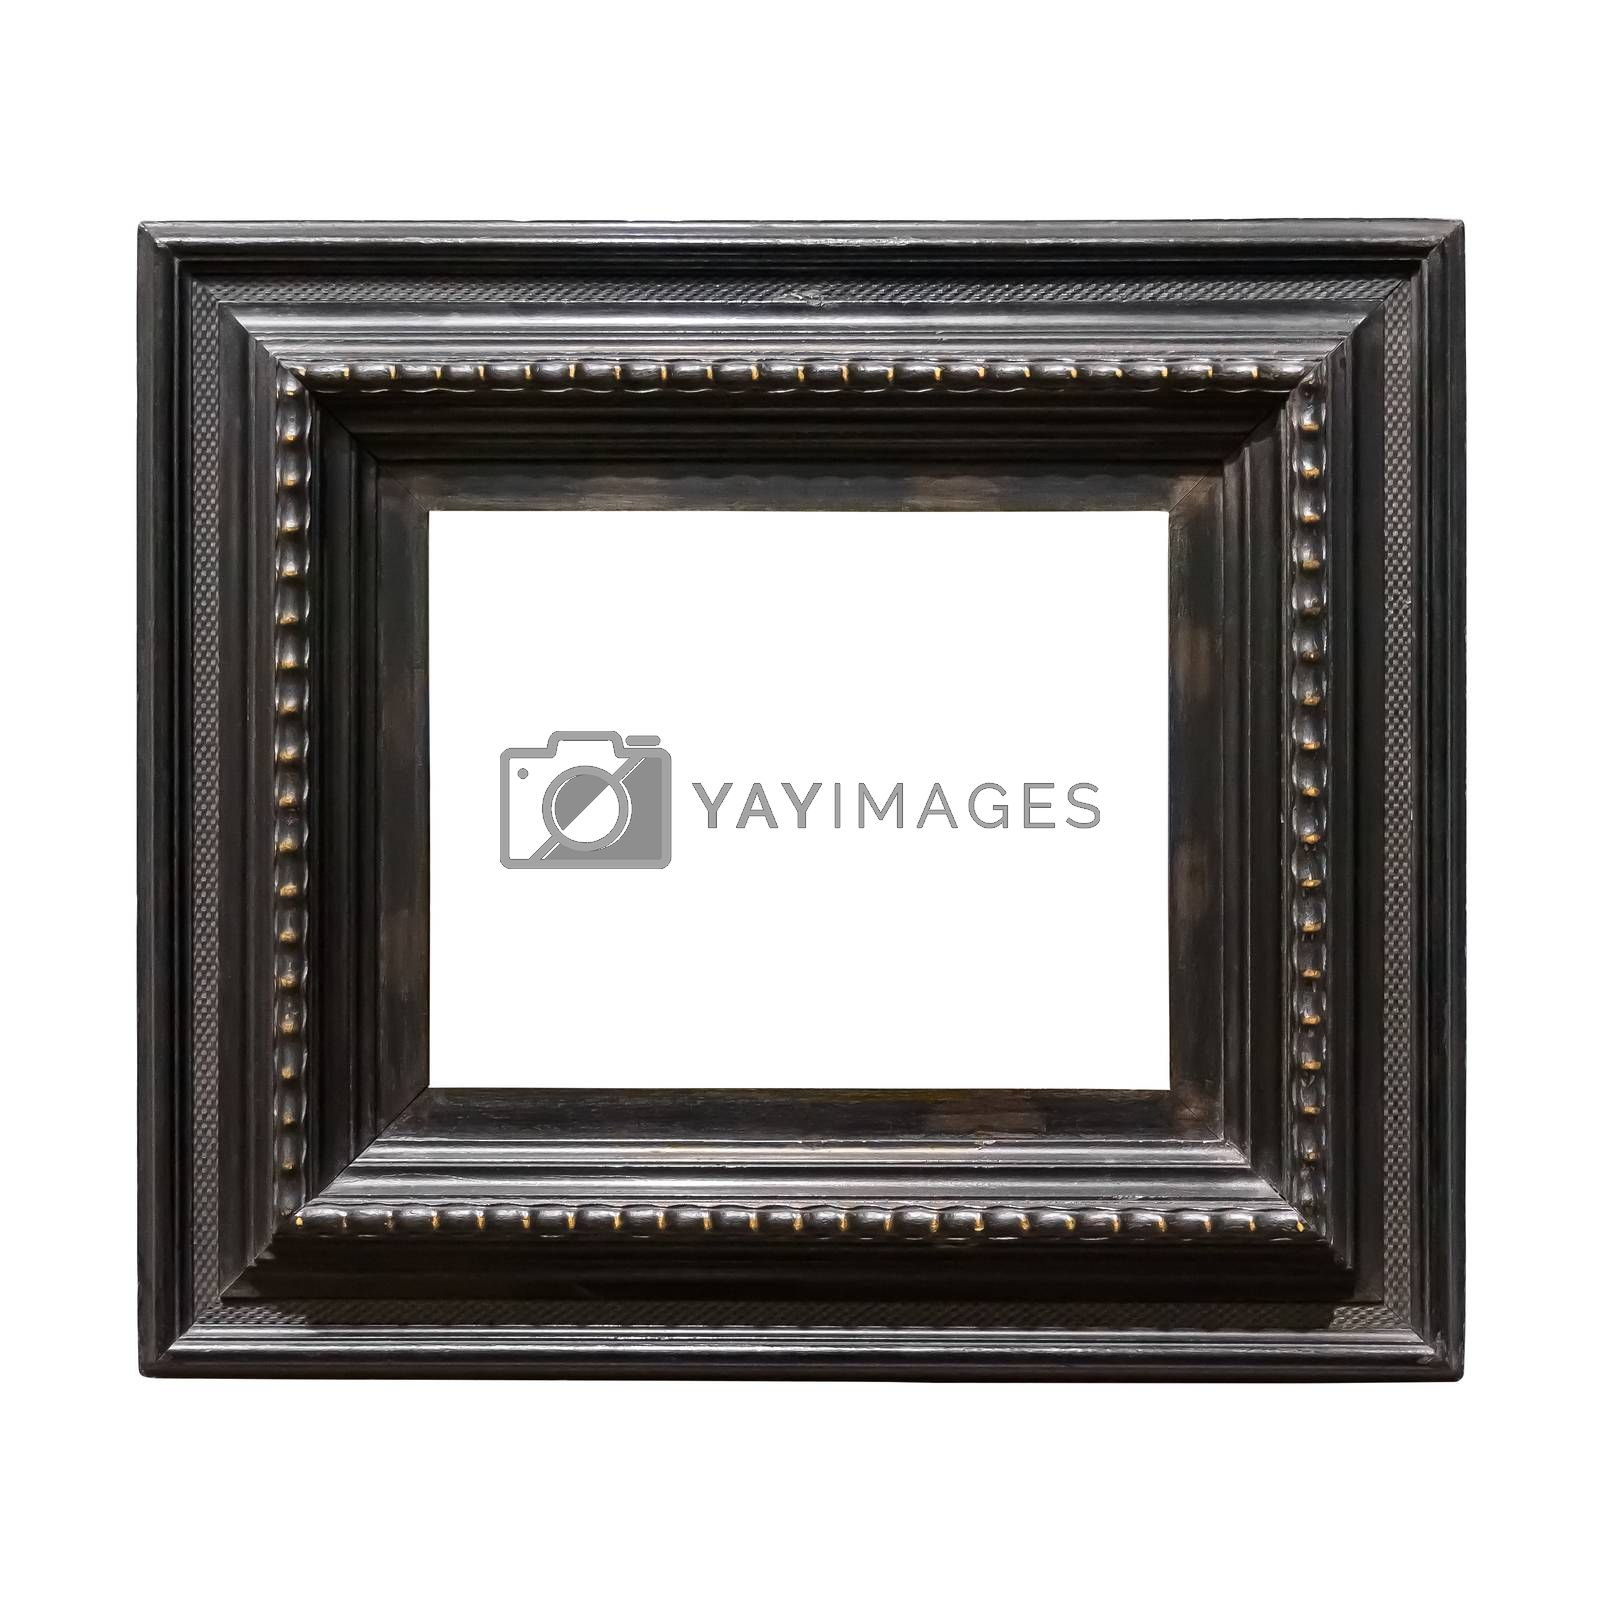 Royalty free image of Square wooden decorative picture frame isolated on white background by mkos83